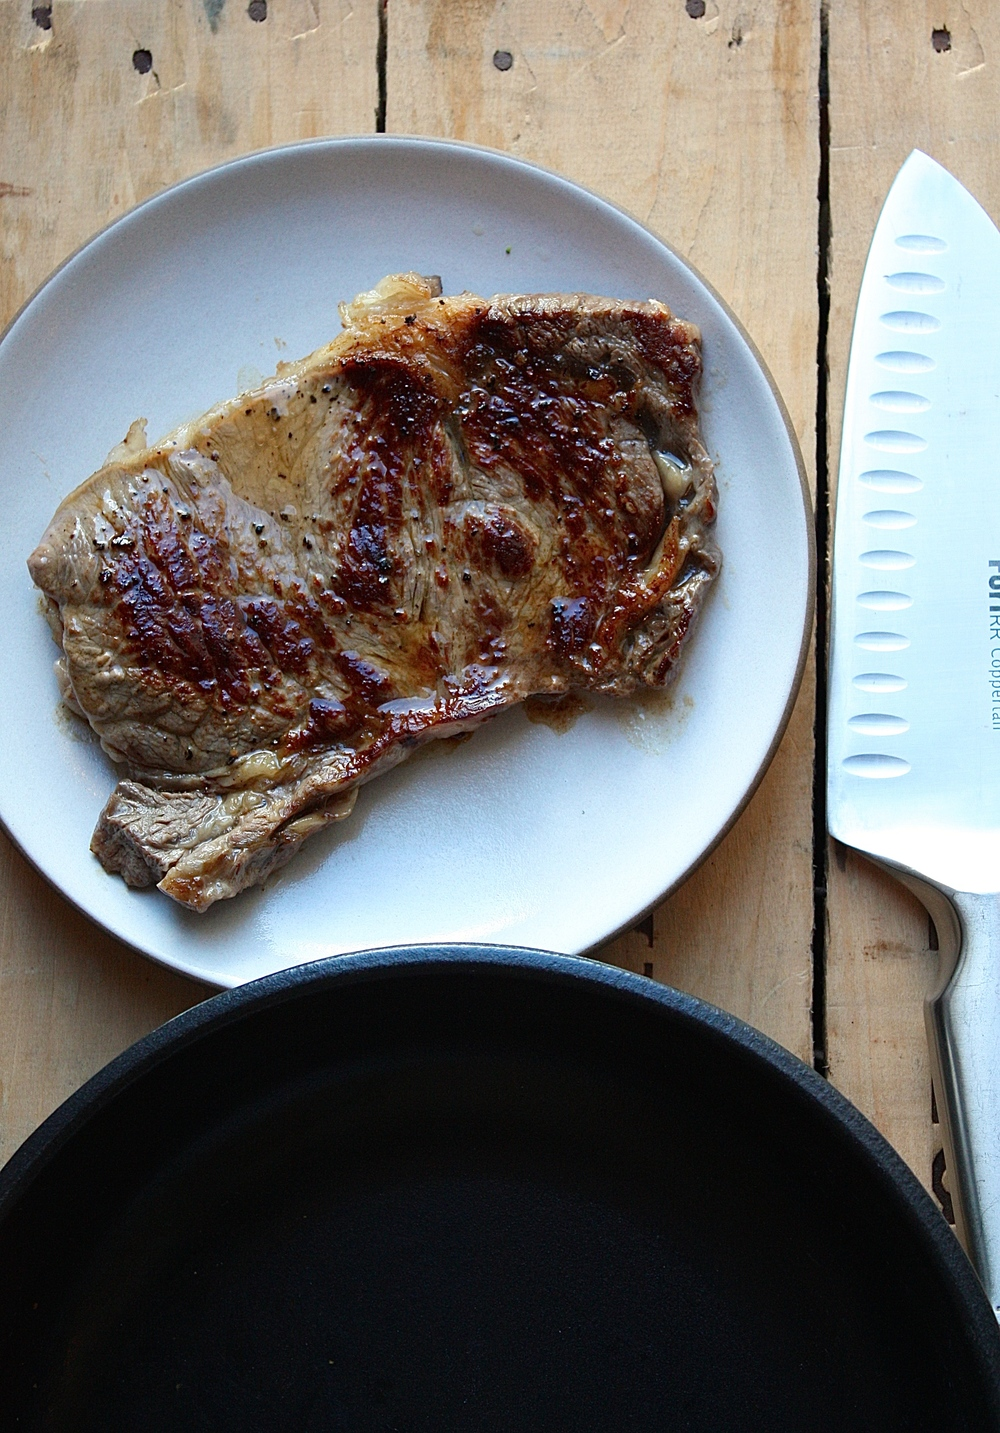 After:  Crusty, juicy steak